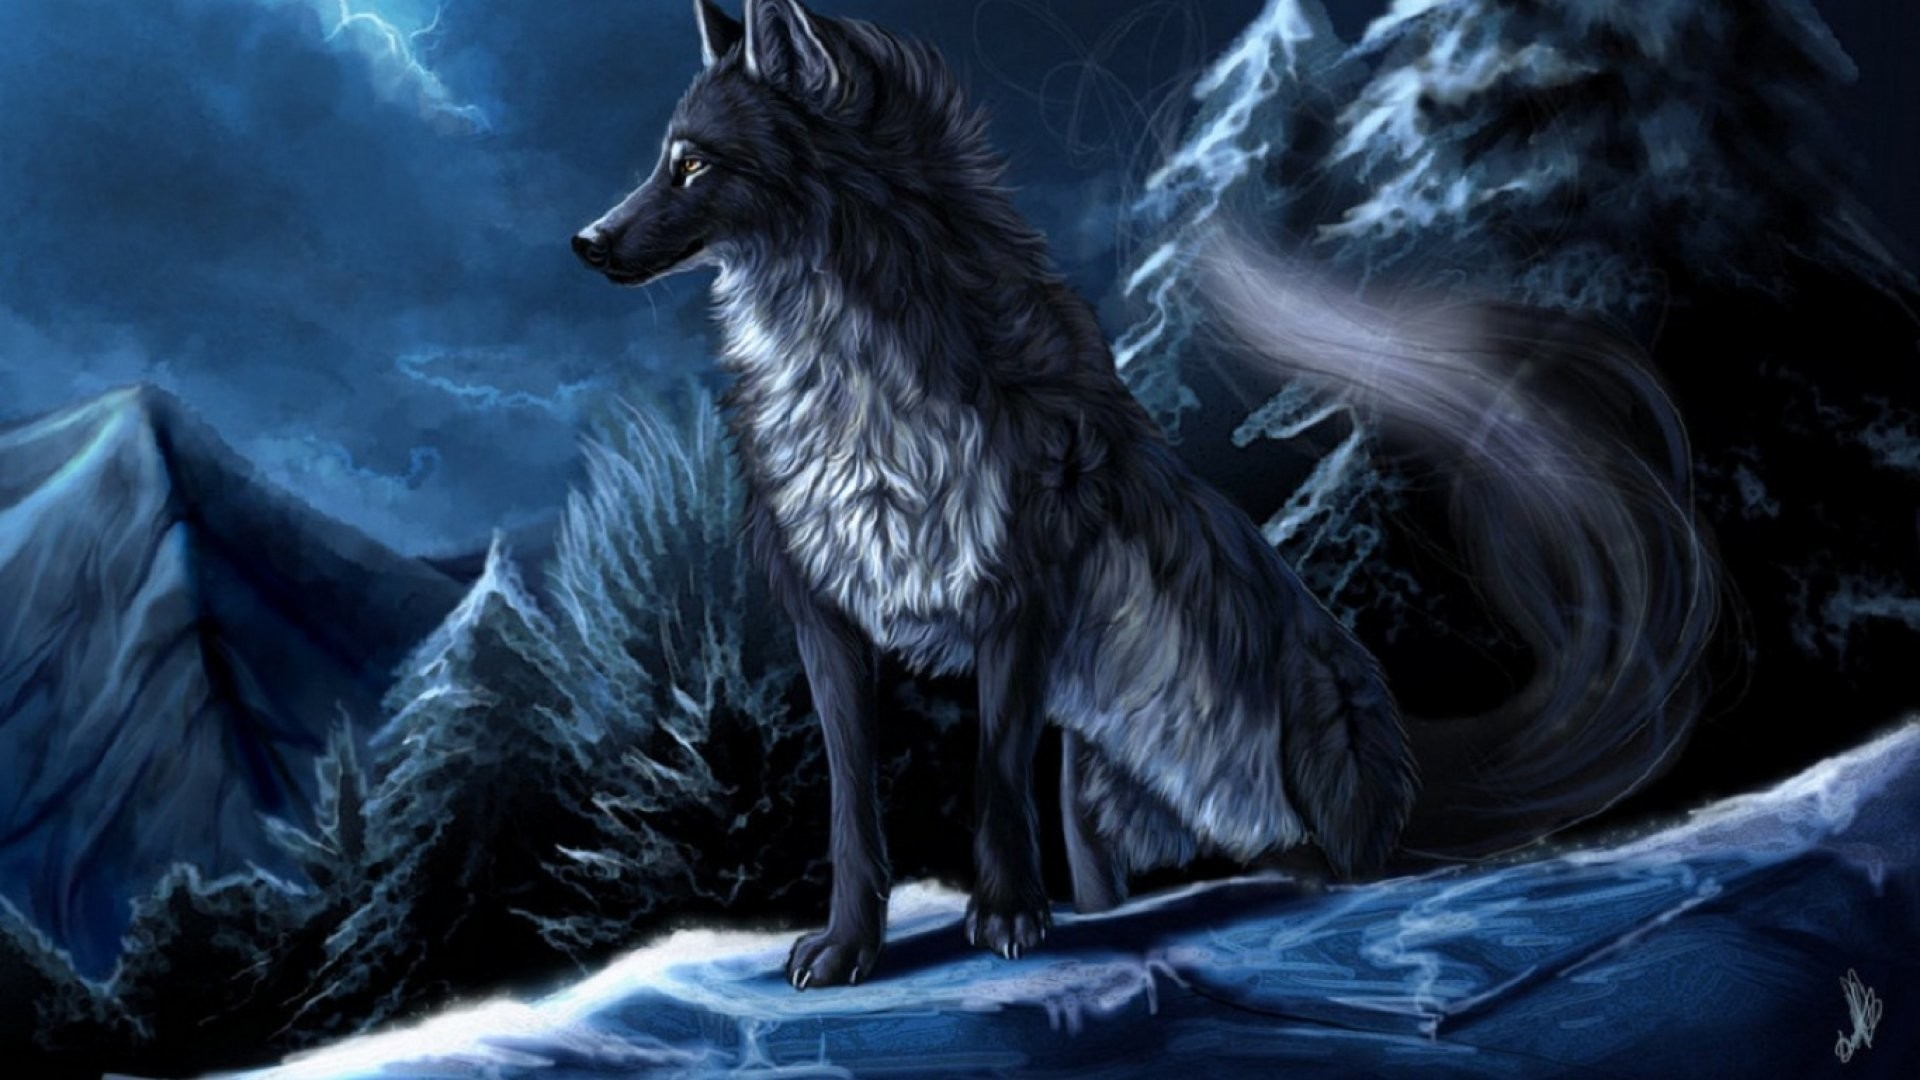 X Winter Wolves Hd Wallpapers Hd Images Hd Pictures Backgrounds A  Winter